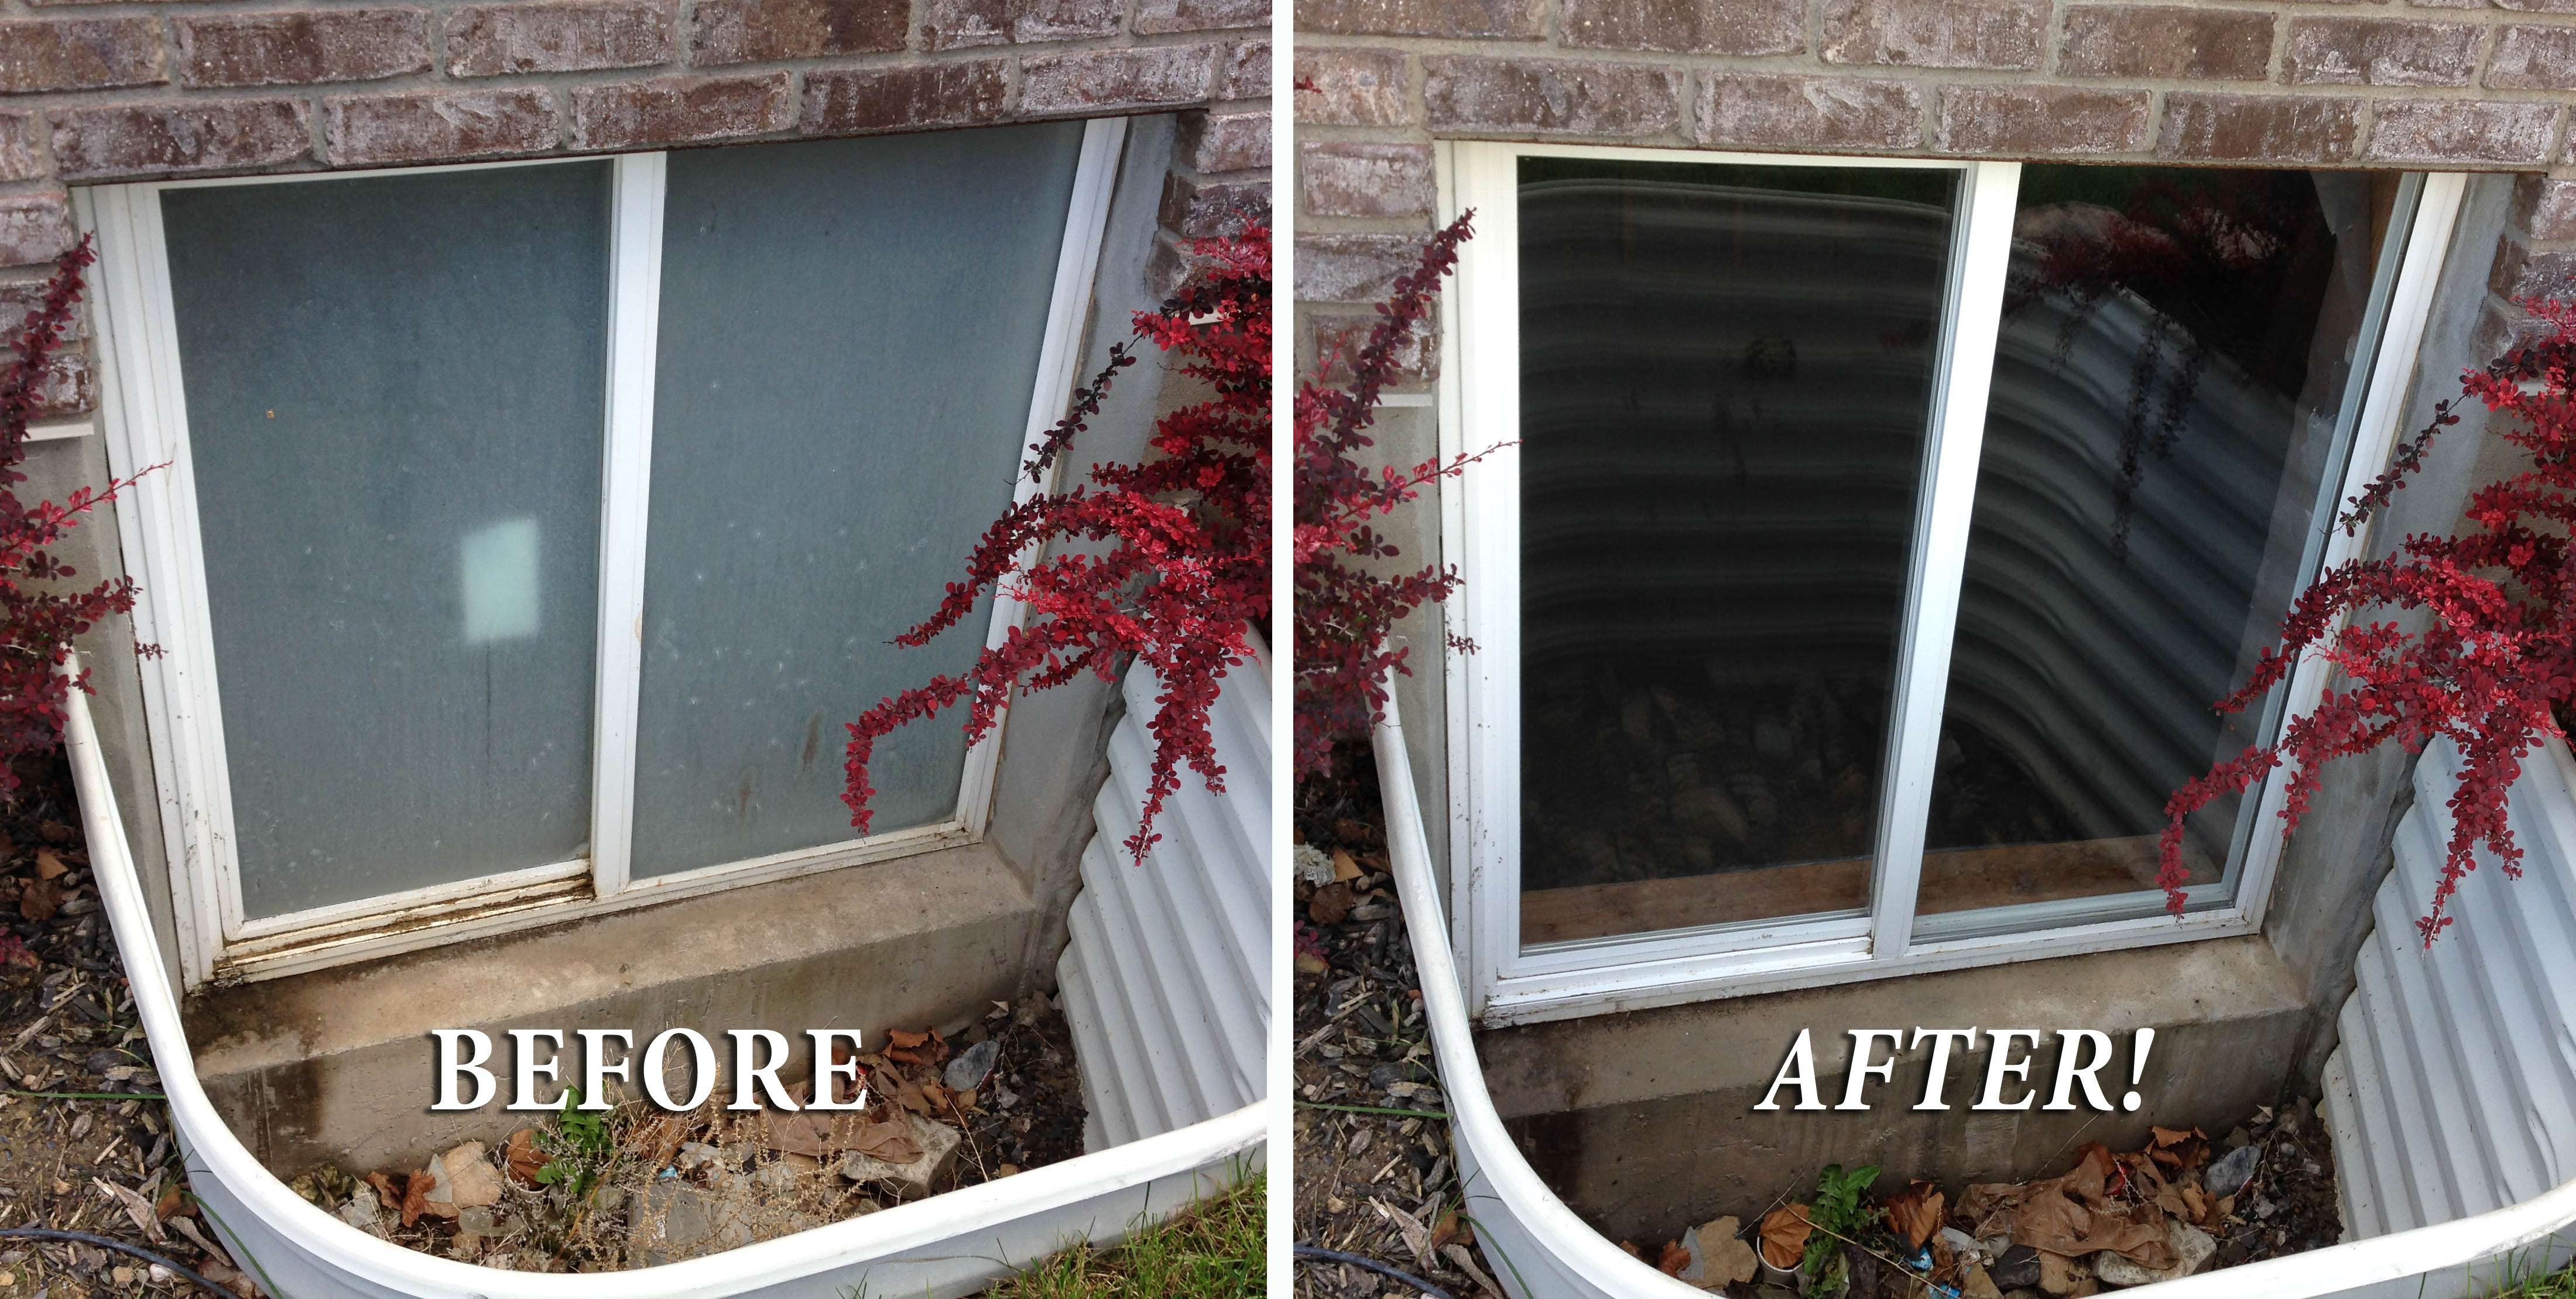 How to clean house windows - How To Clean House Windows 54